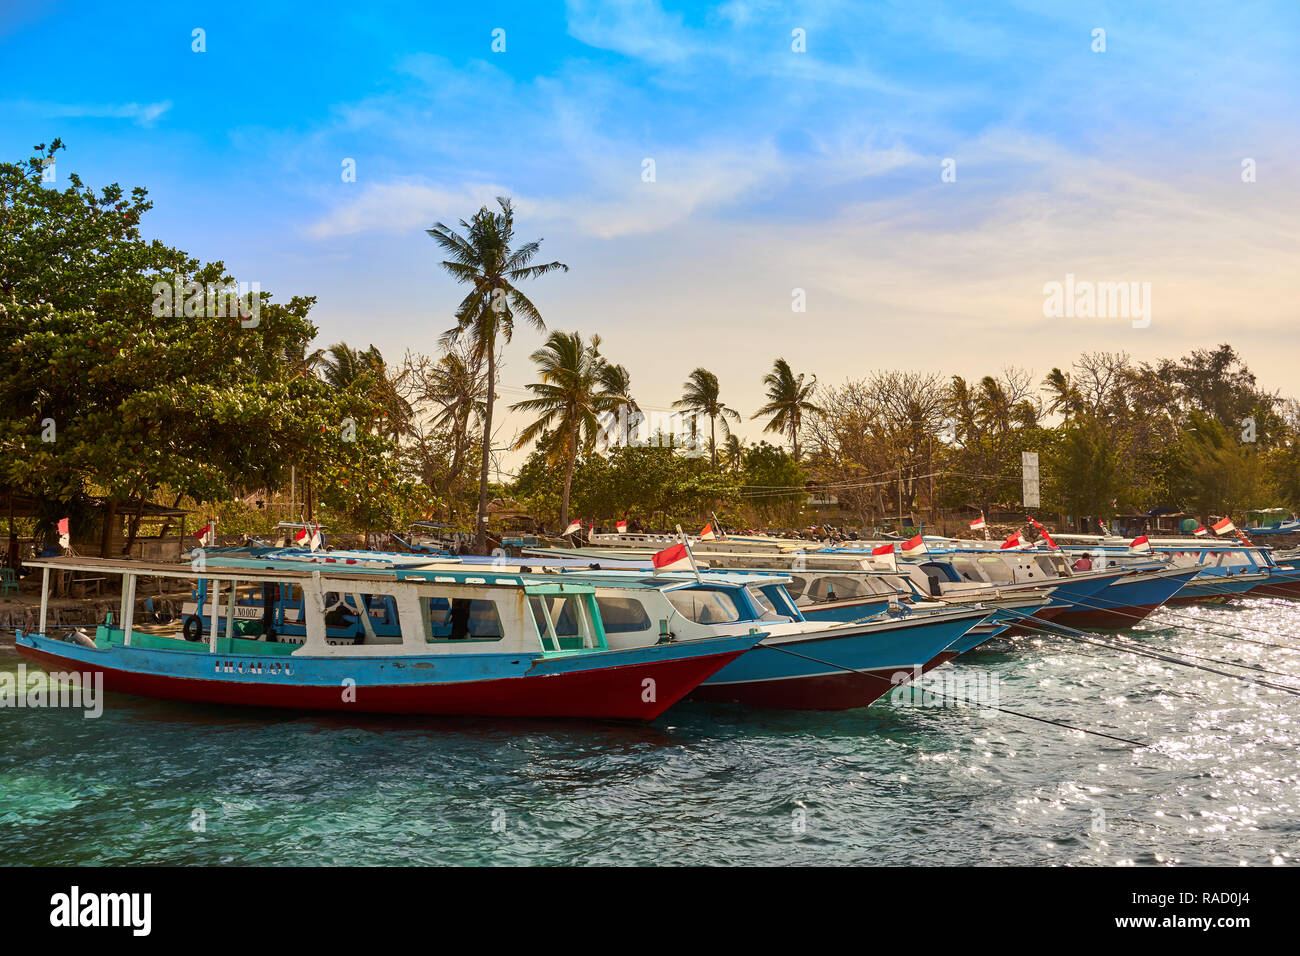 Boats moored in Gili Air's harbour, Indonesia, Southeast Asia, Asia - Stock Image